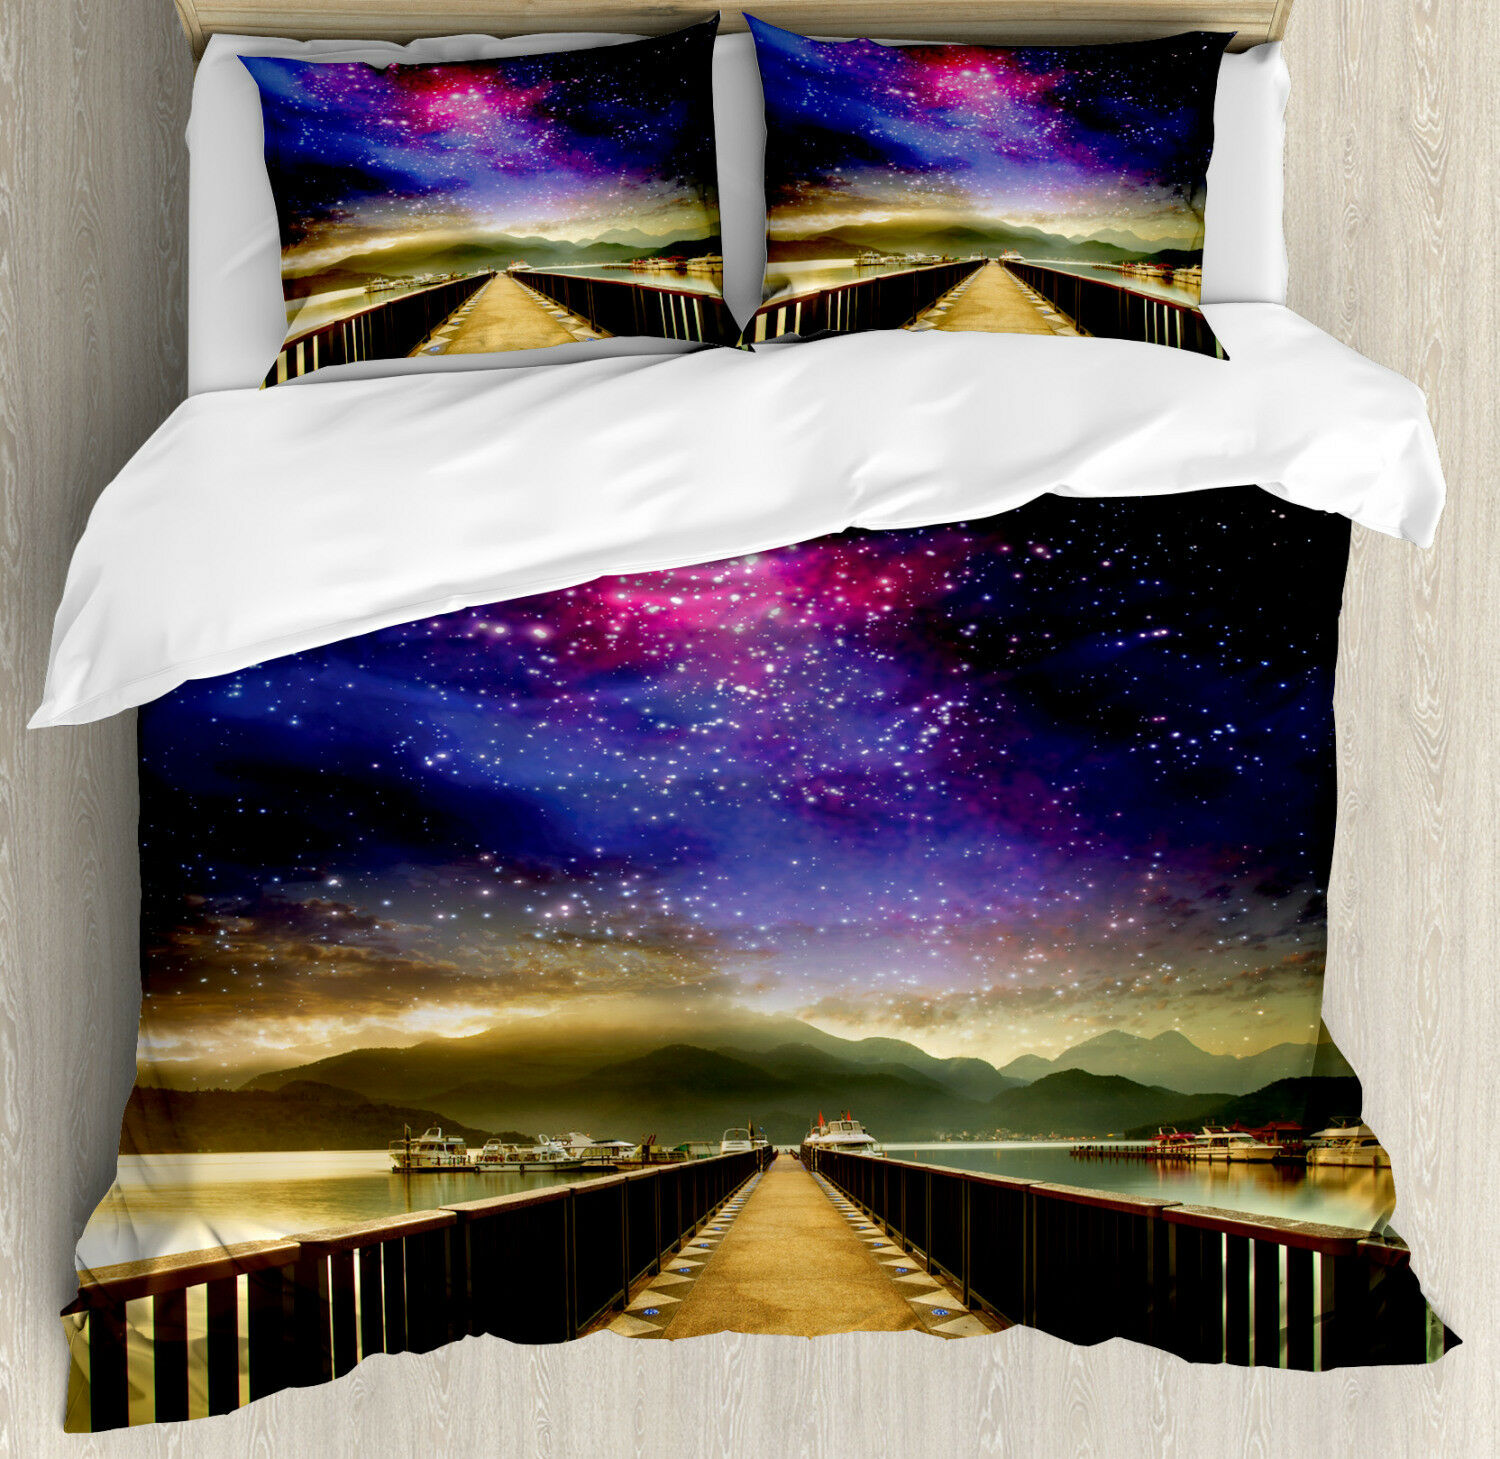 Universe Duvet Cover Set with Pillow Shams Galaxy Cosmos Bridge Print